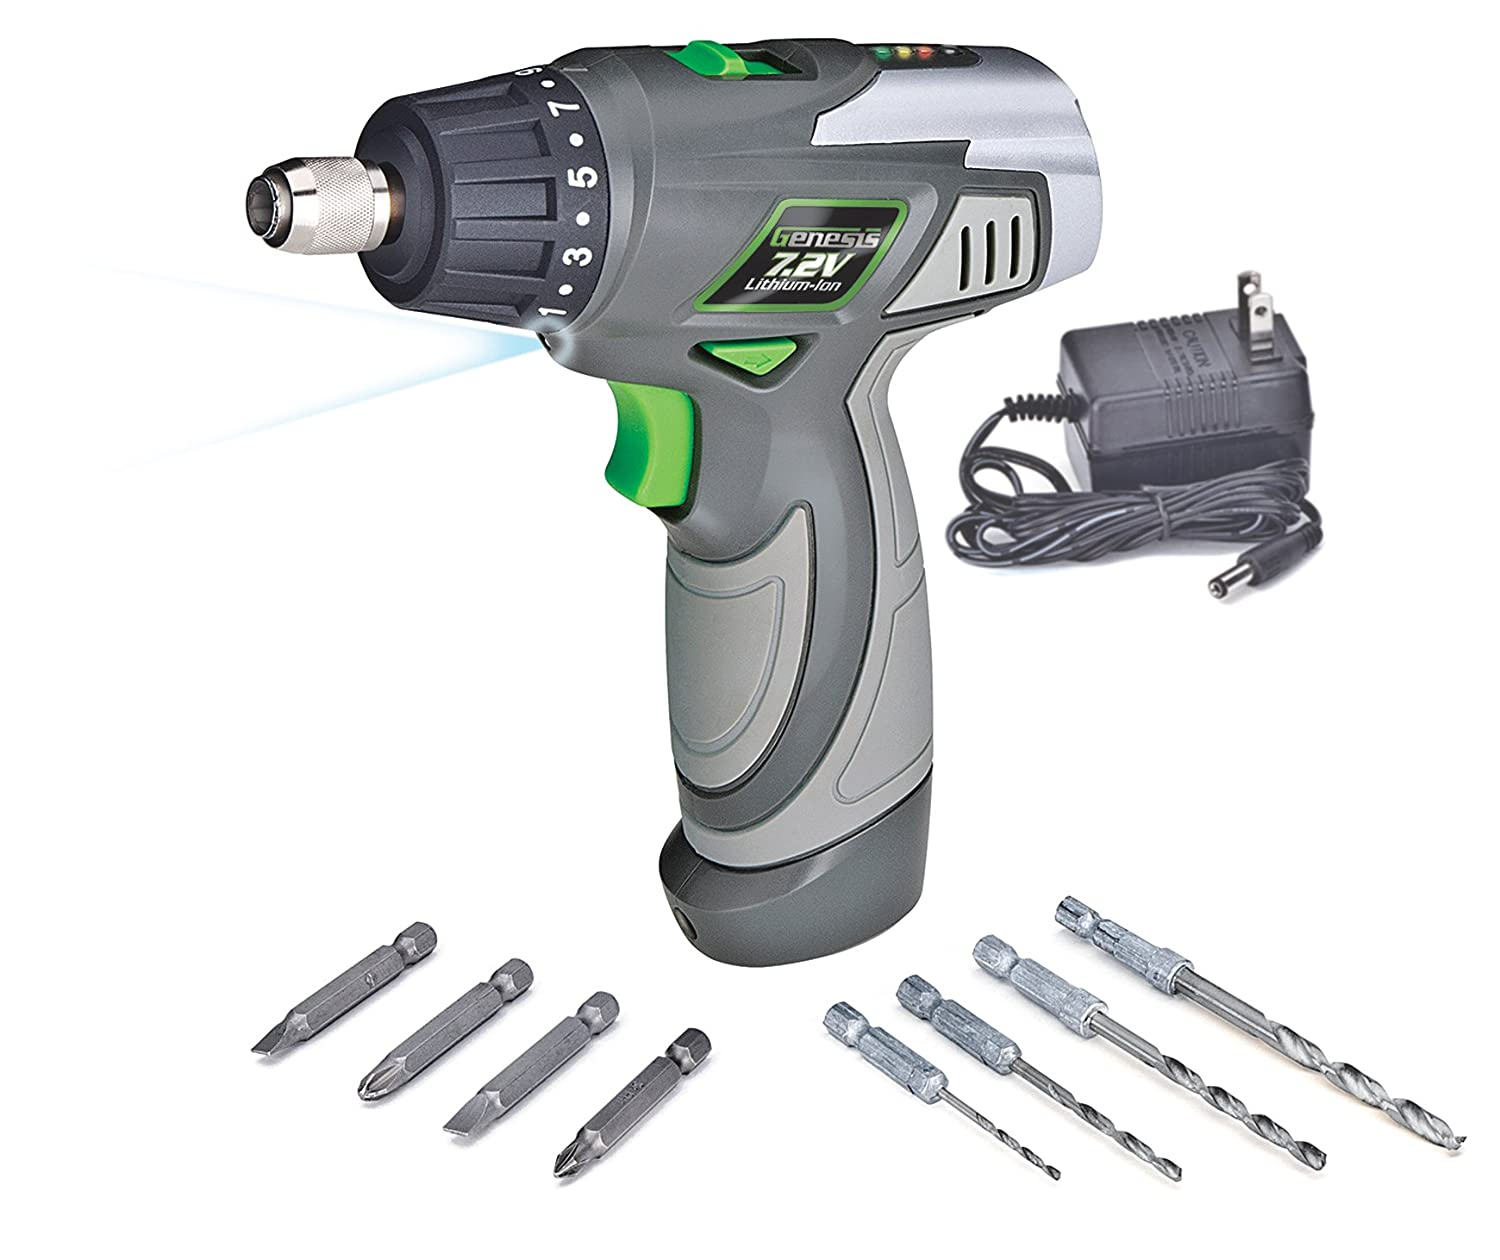 Genesis GLSD72A 7.2V Lithium Ion 2 Speed Screwdriver Grey 1 4 inch chuck with Trigger Activated LED light Battery Charger and 8 Piece Accessory Drill and Driver Bit Set